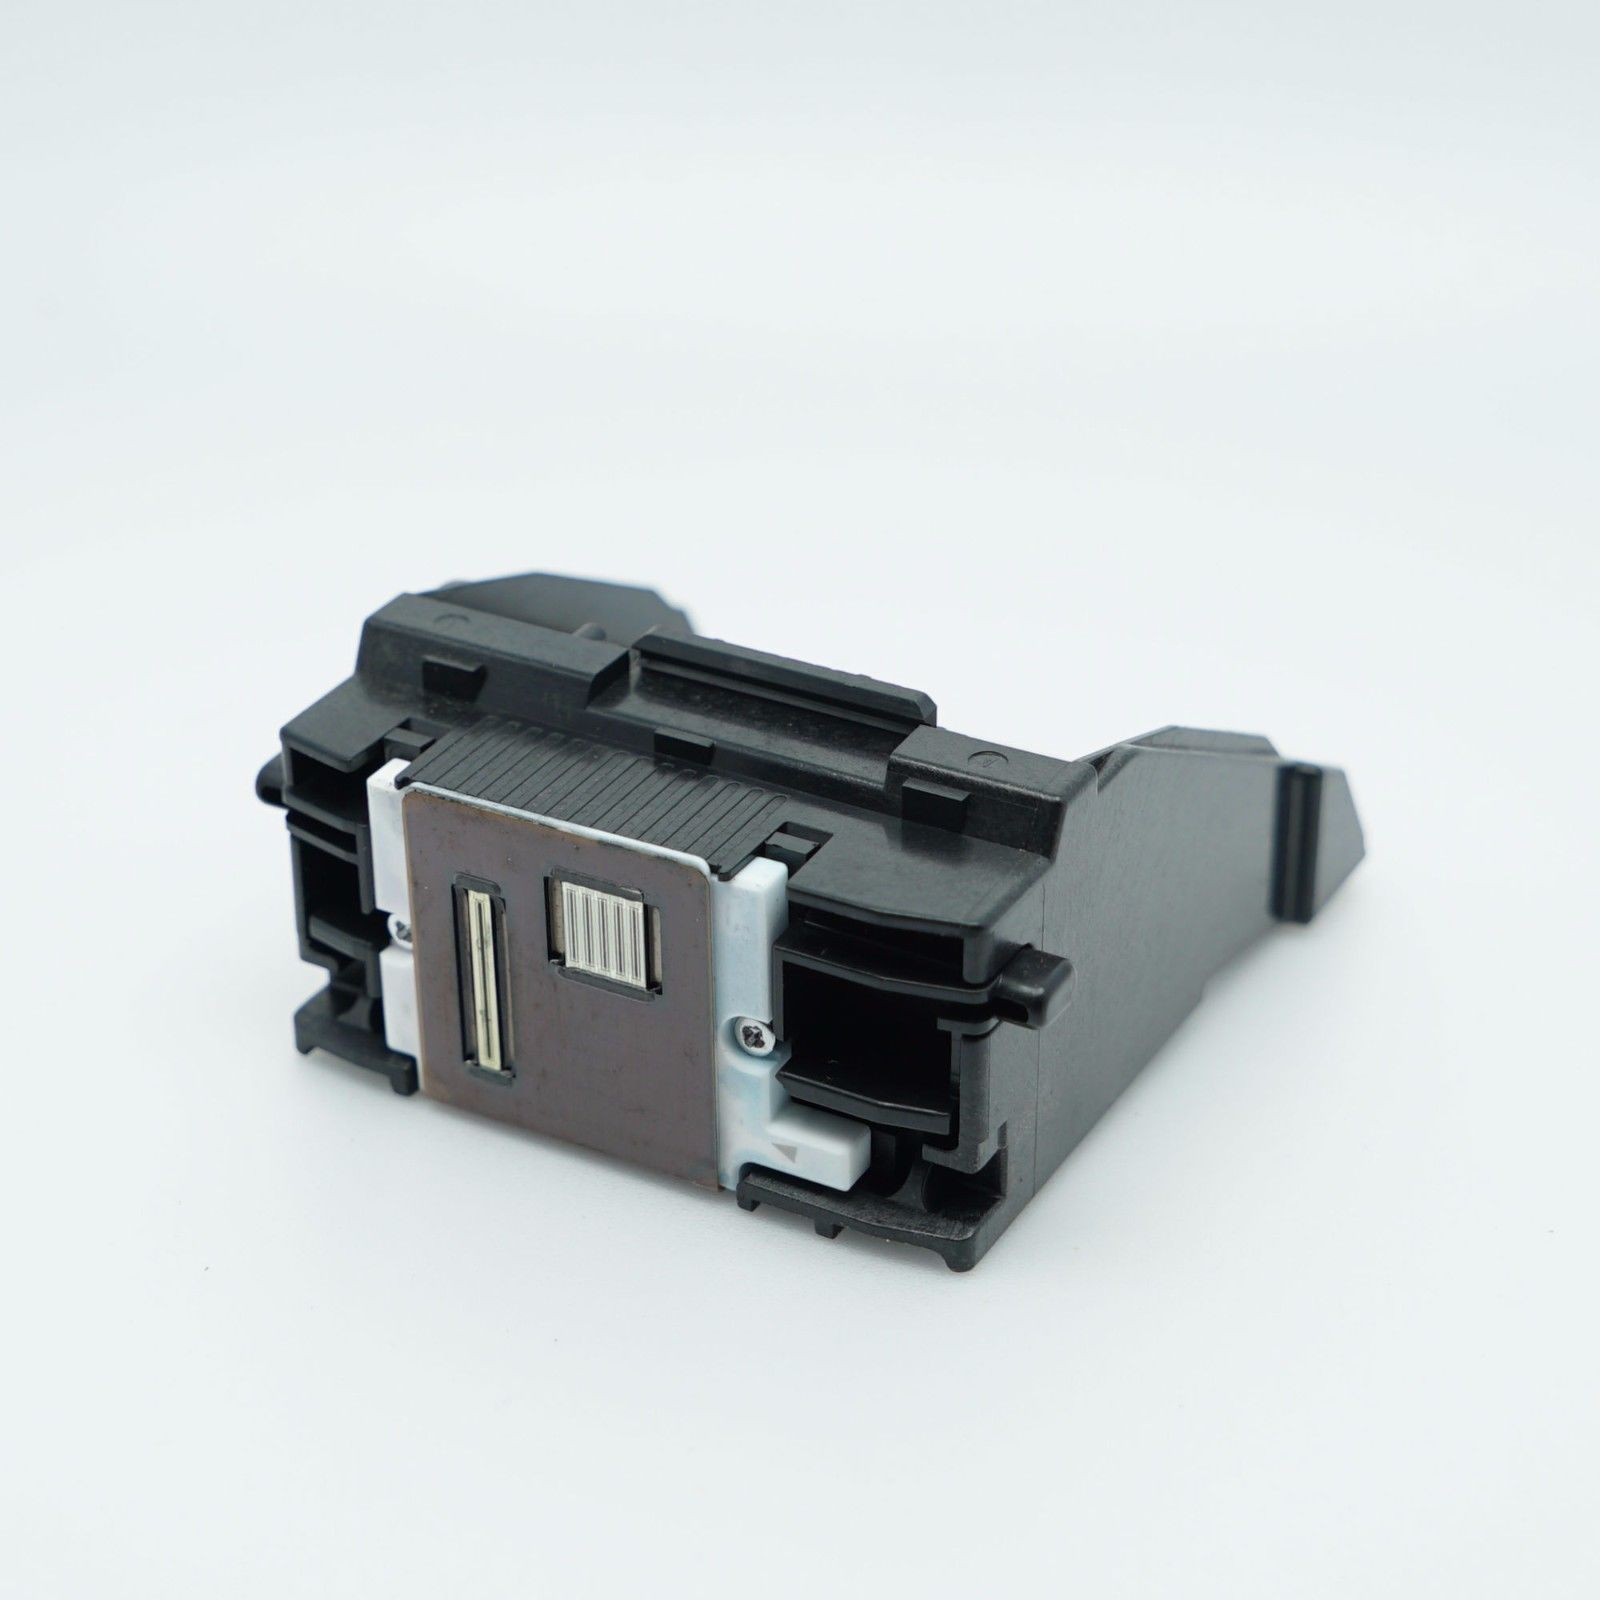 QY6-0042 print head FOR CANON i560 i850 iP3000 MP700 MP710 iX4000 iX5000 iP3100 original qy6 0064 printhead canon ix4000 print head ix5000 i850 printer head for canon ip3000 ip3100